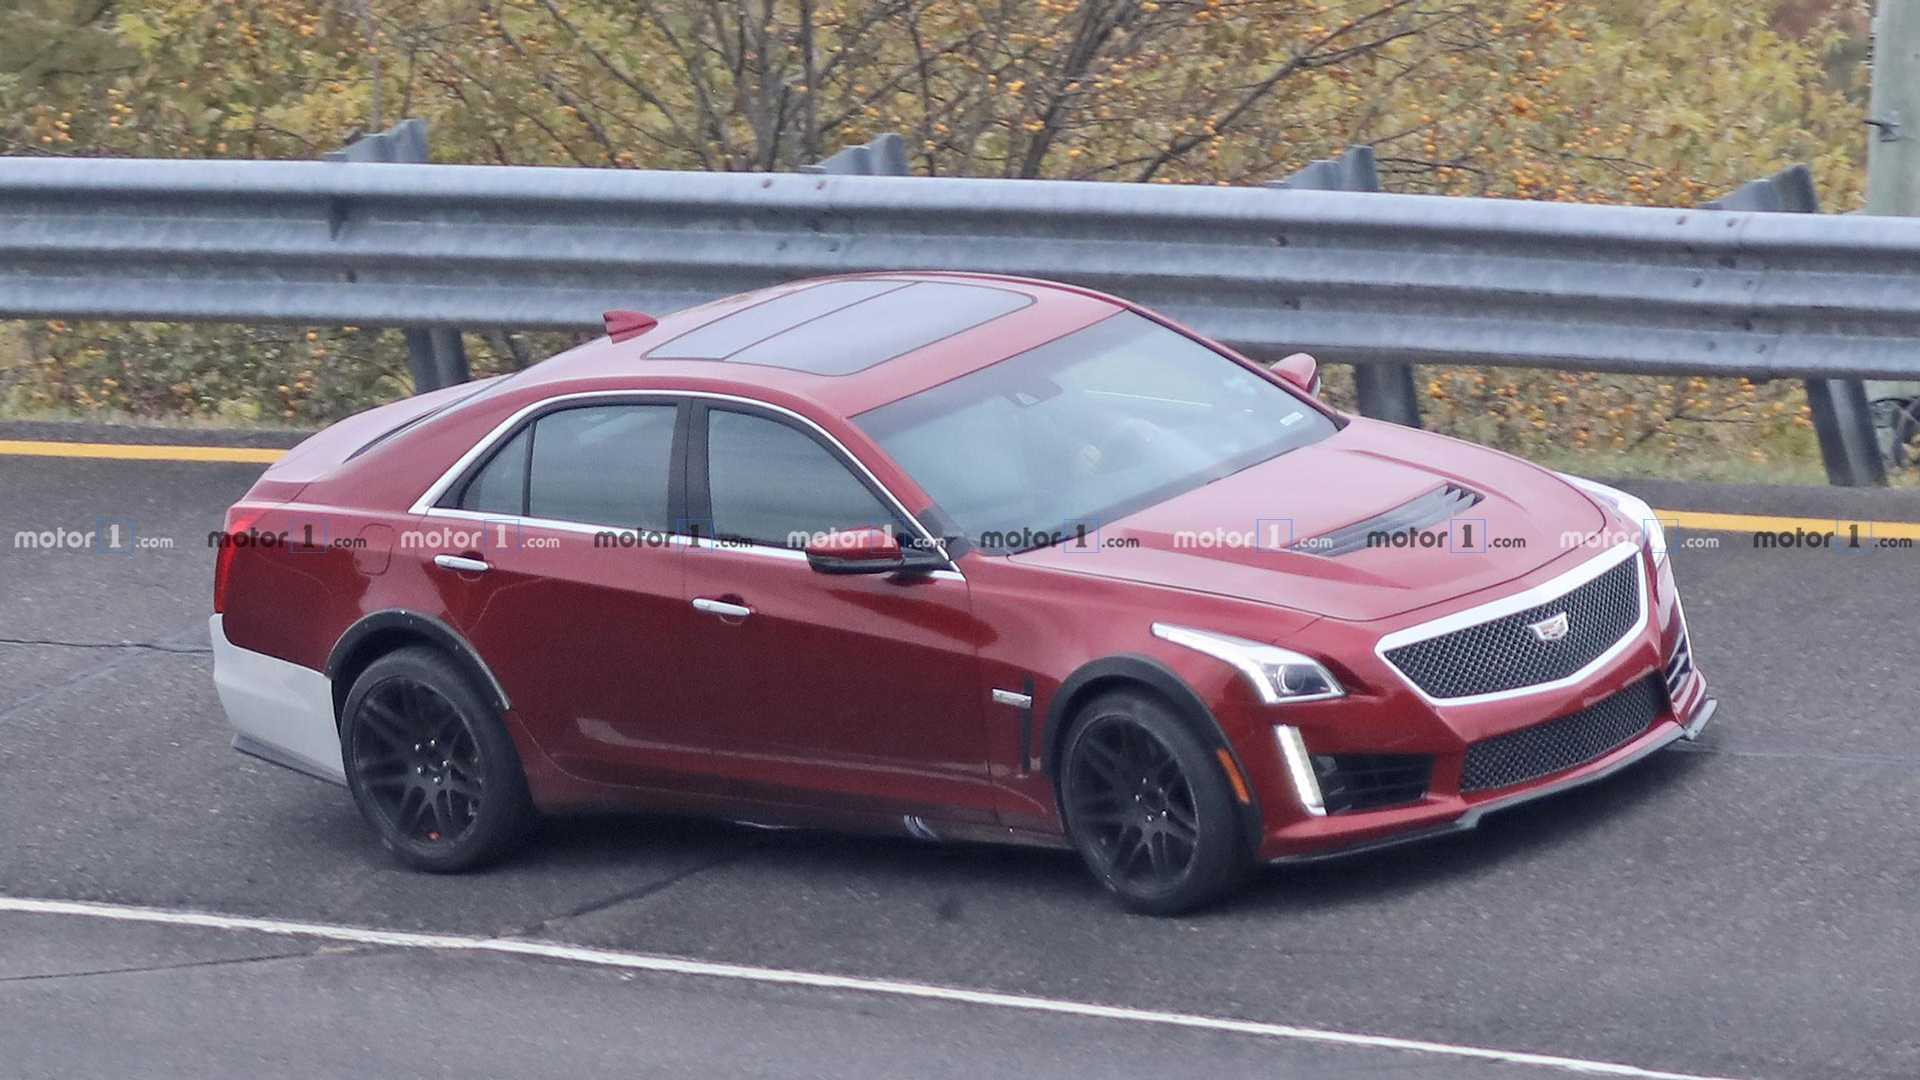 36 All New Cadillac Ats V 2020 Images for Cadillac Ats V 2020